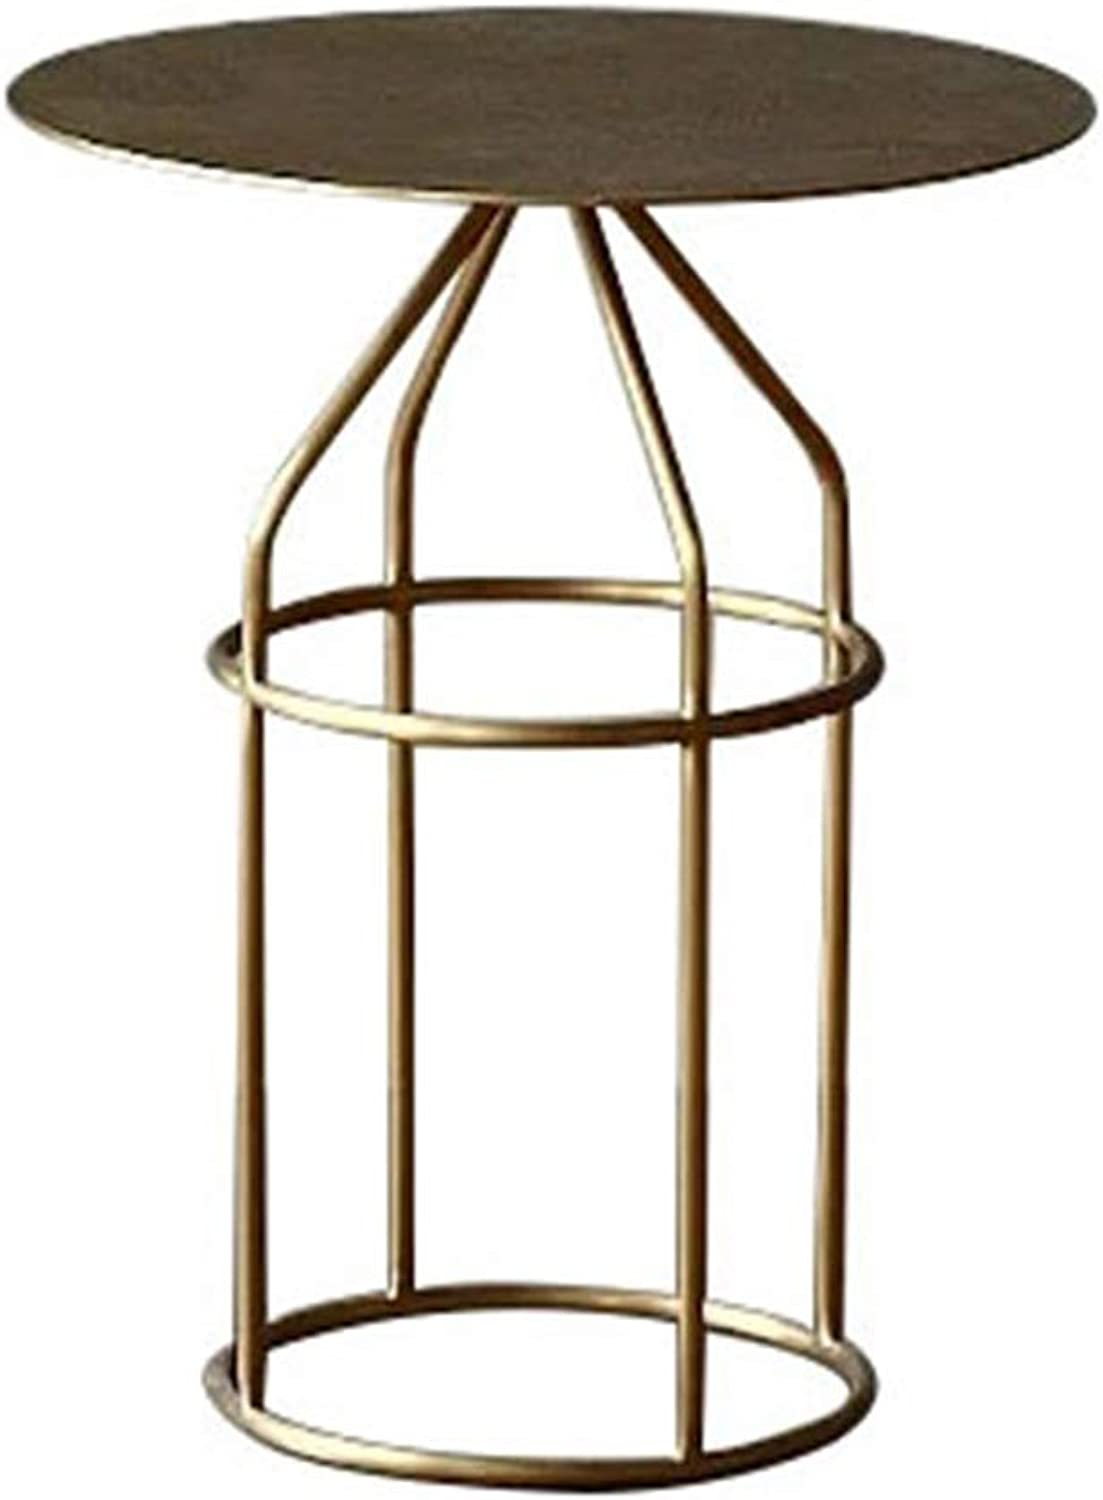 Iron Small Table Save Space for Living Room Bedroom Study Small Round Table gold 007